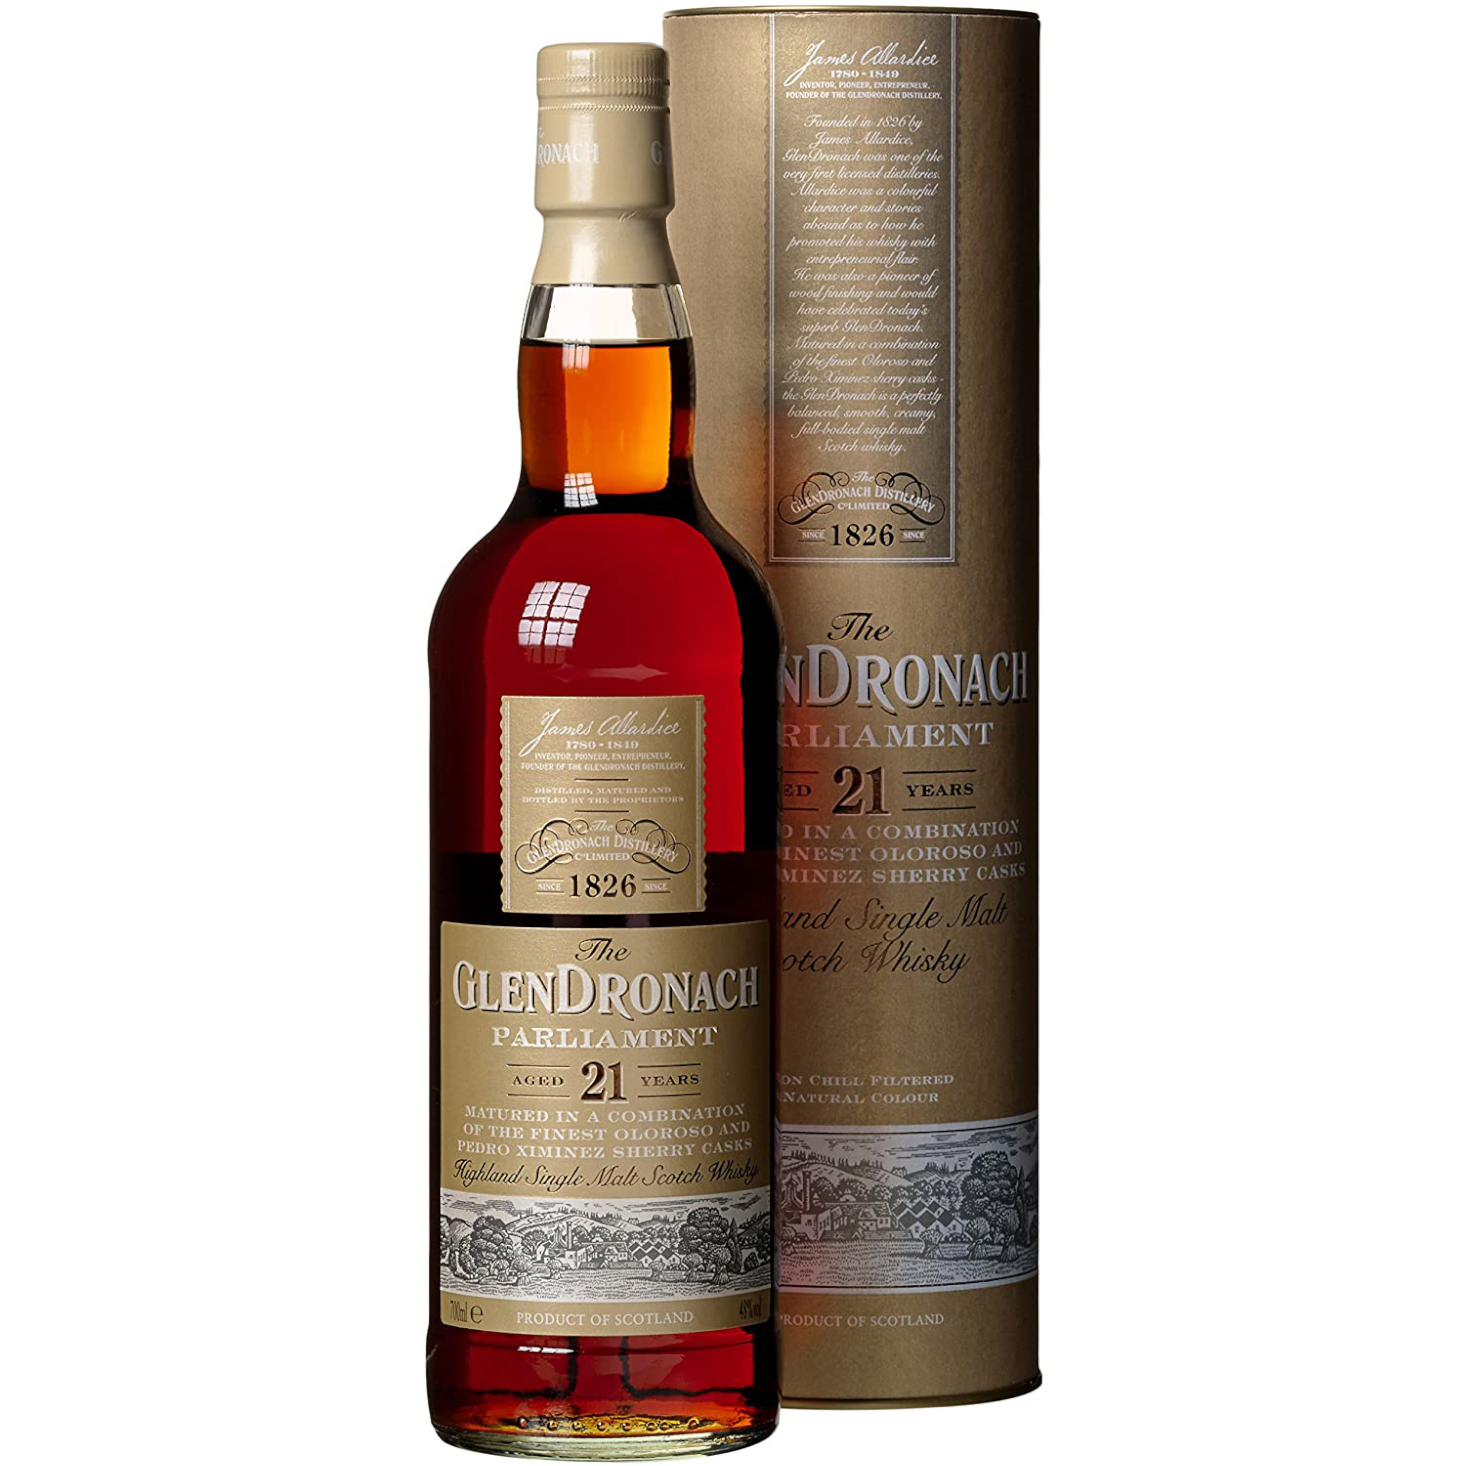 The Glendronach Parliament 21 Year (750mL)